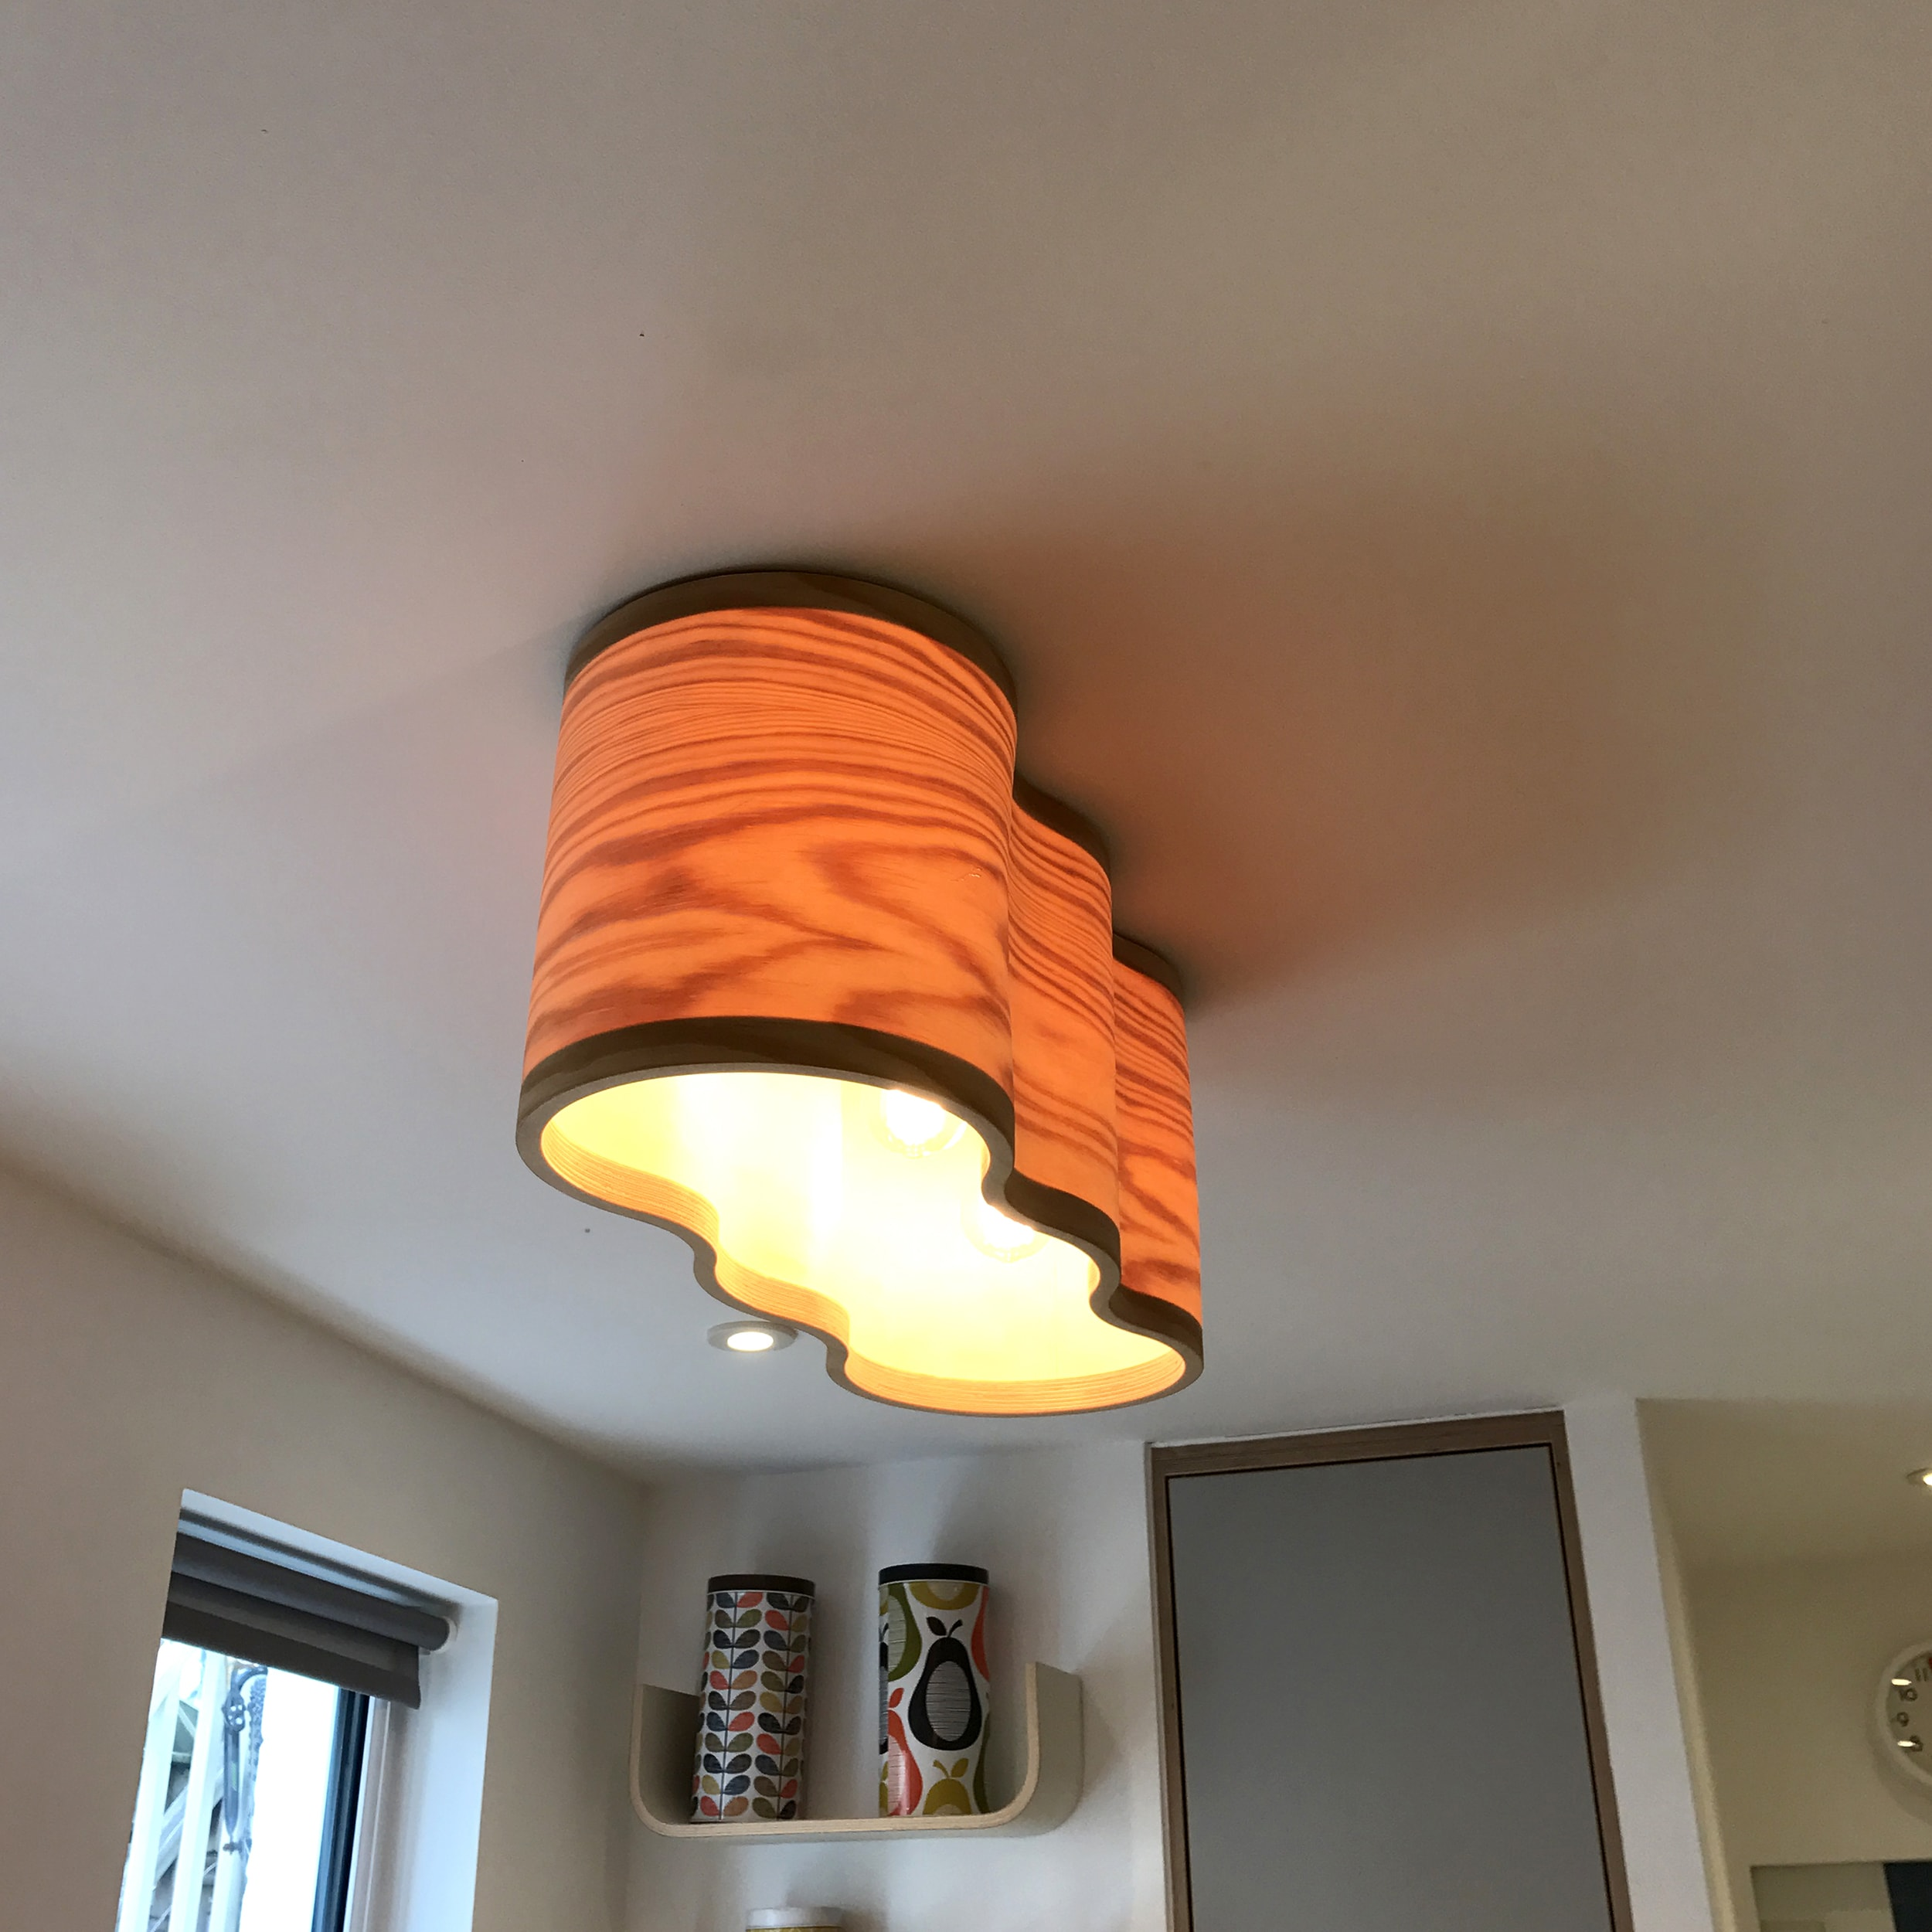 Georgina kitchen lamp ceiling-min.jpg